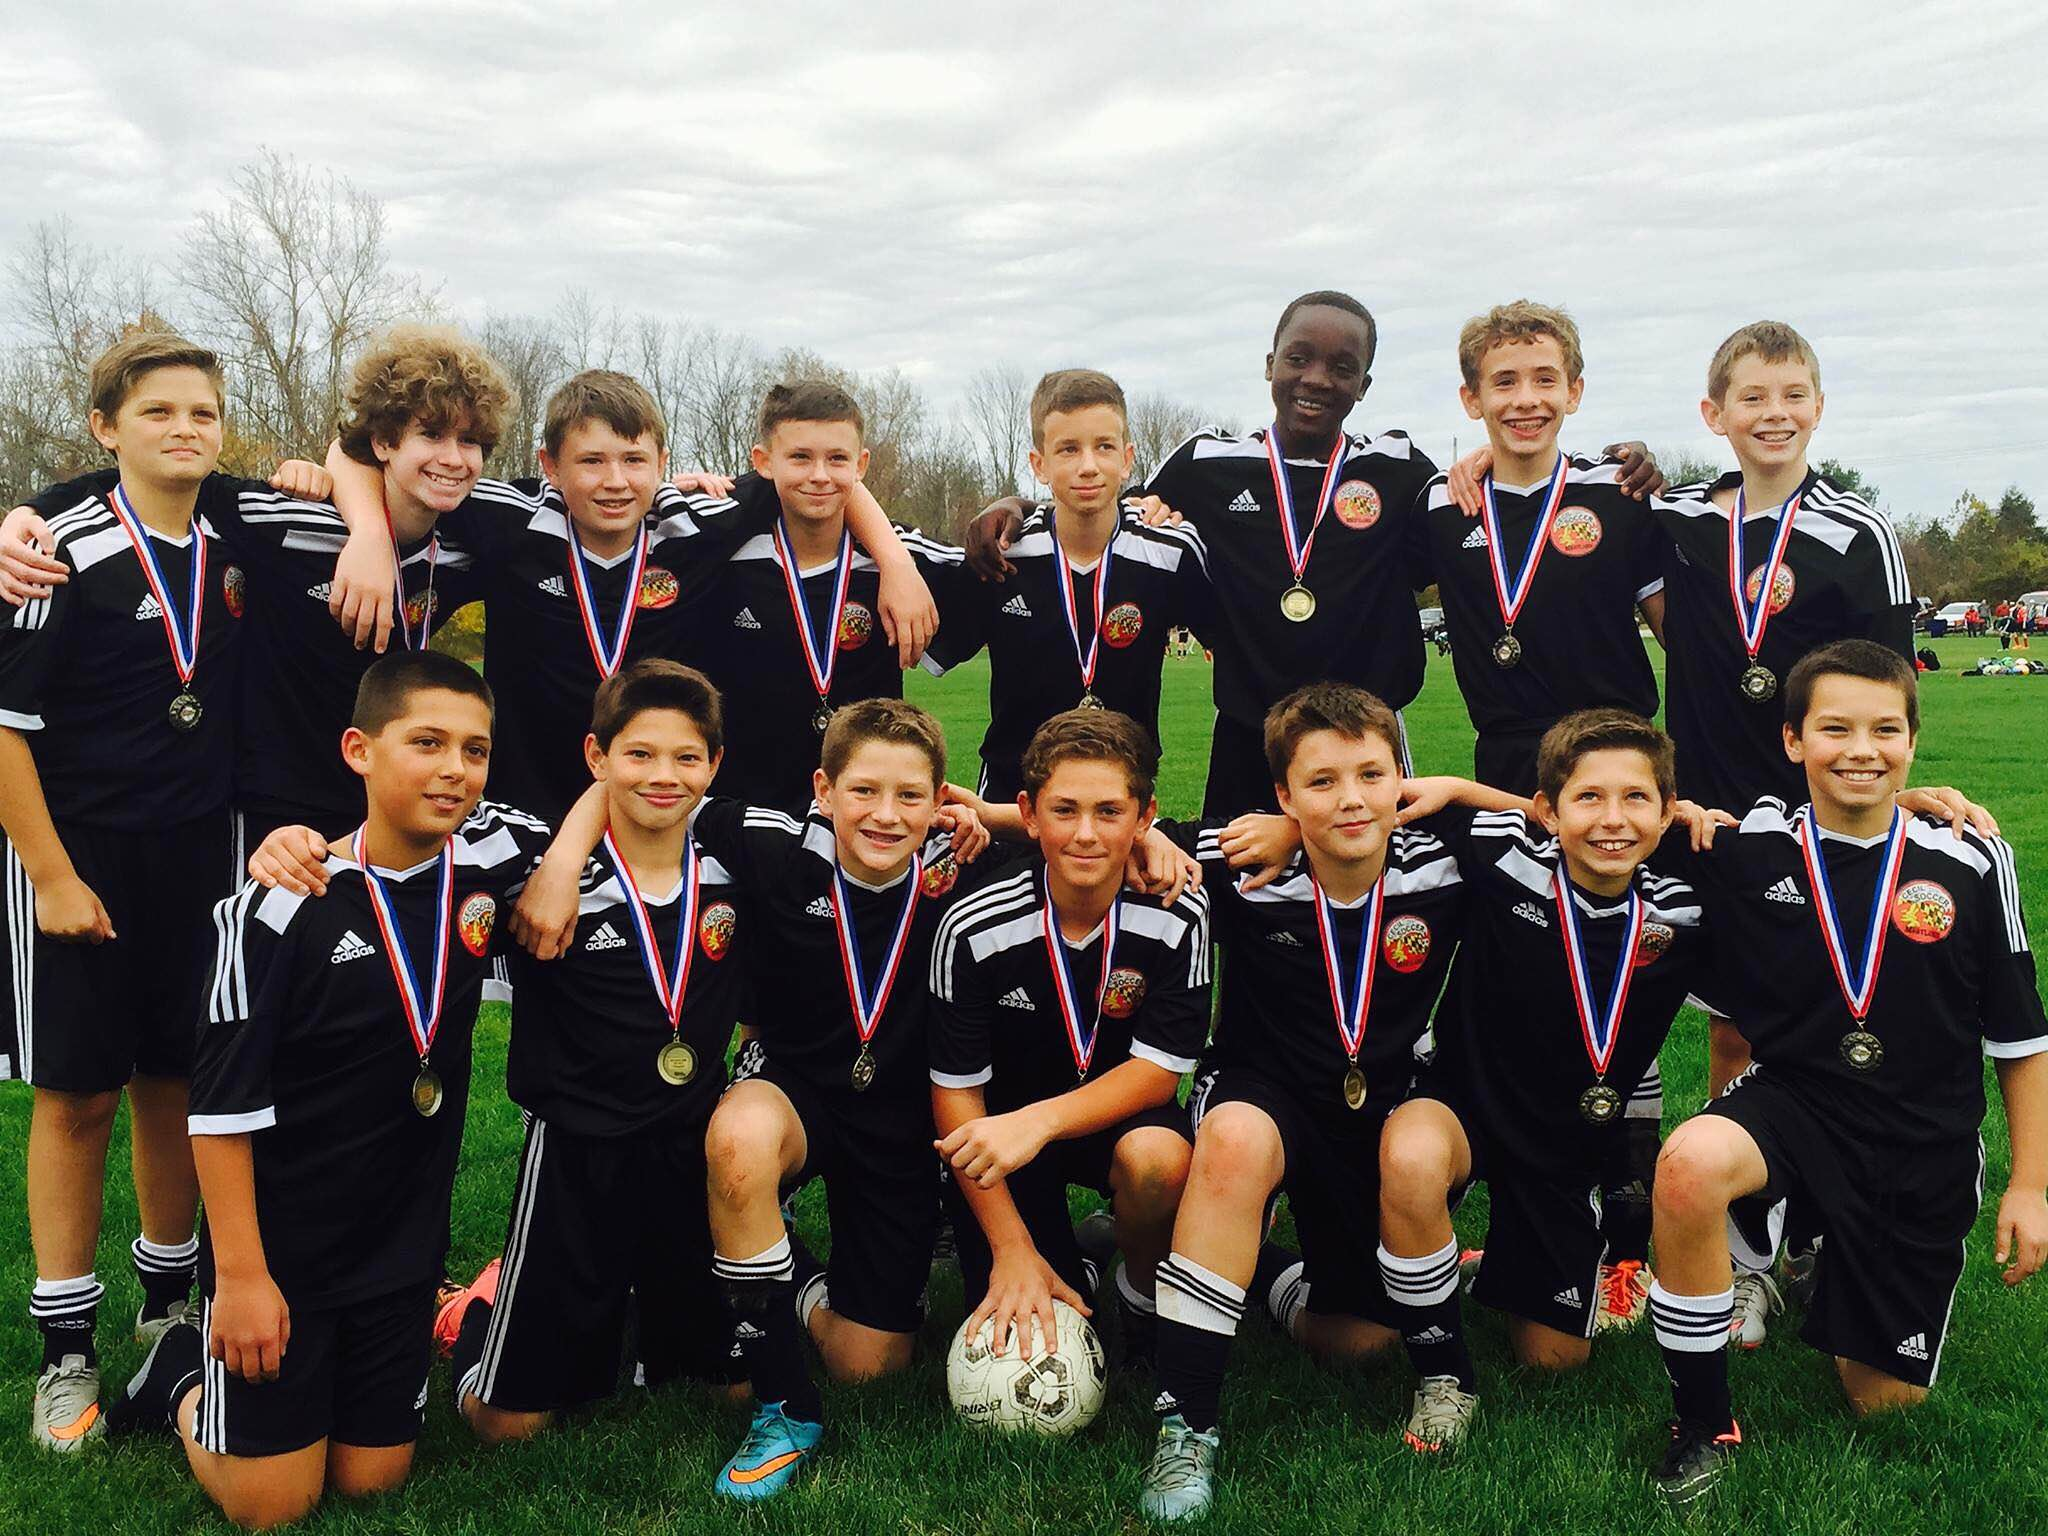 U13 Arsenal Fall 2015 D1 Champs!